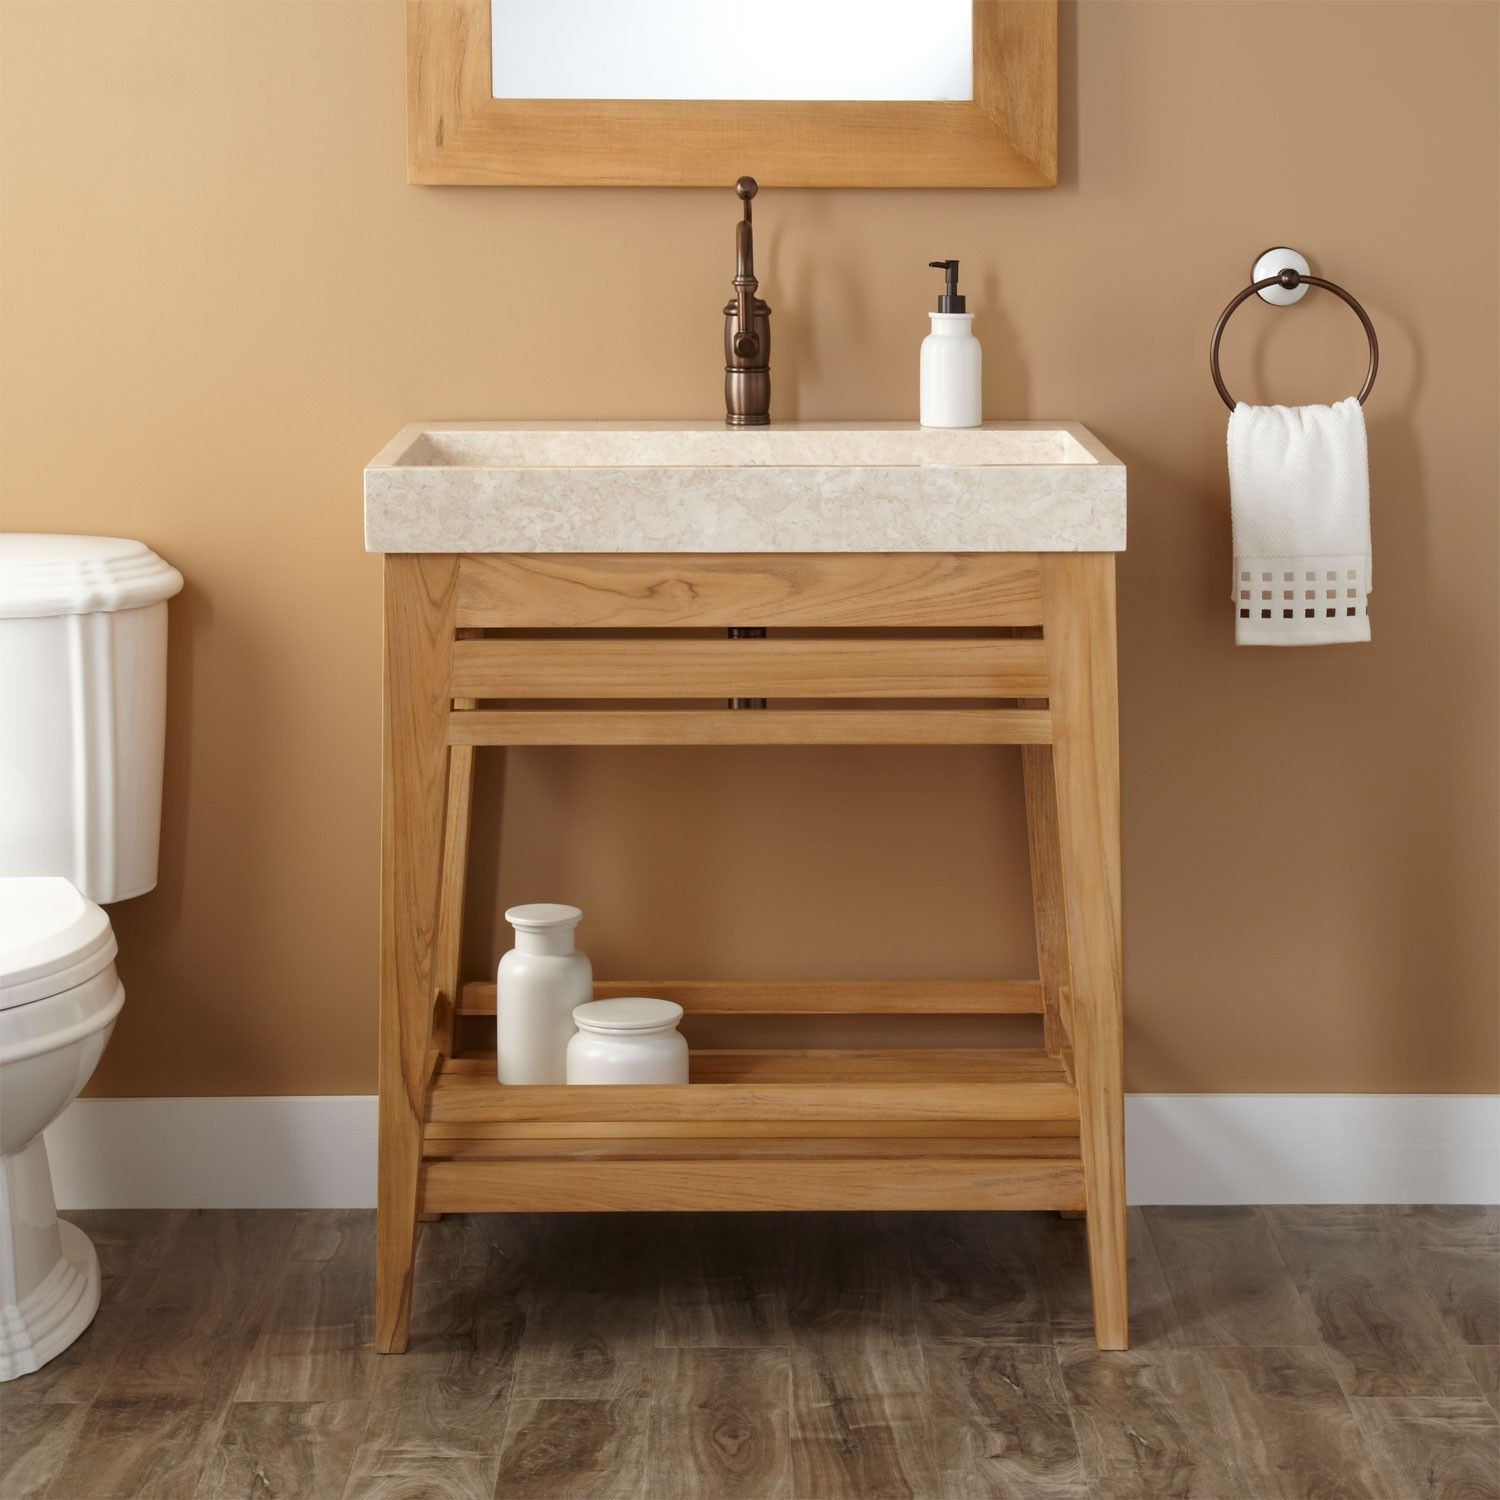 Bathroom Fixtures Adorable Furniture Vanity Sink Cabinets Rustic Wall Mounted Bathroom Sinks Untreated Teak Bathroom Open Bathroom Vanity Rustic Bathroom Sinks